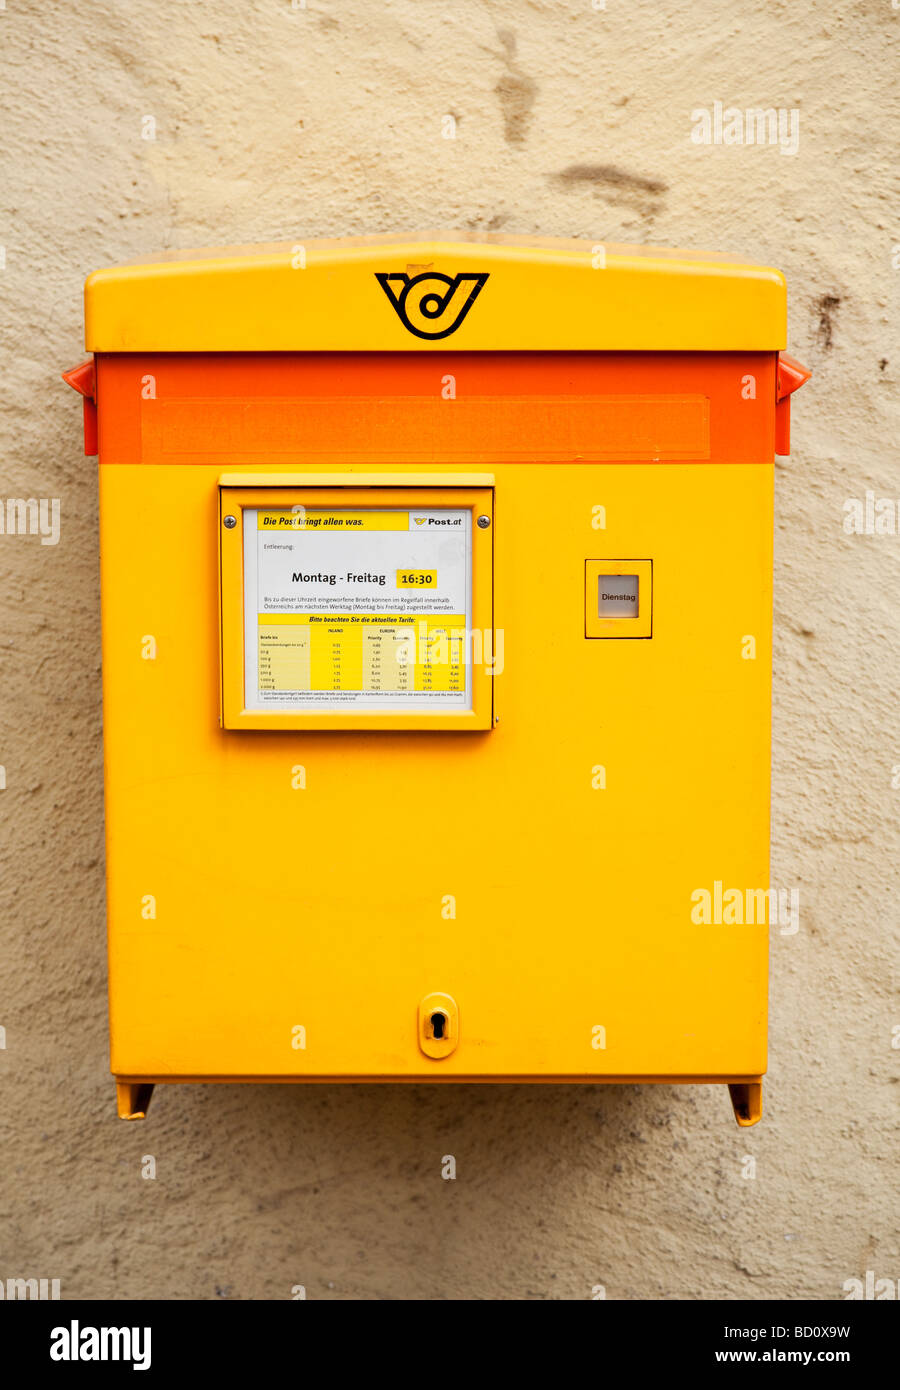 Postbox with collection times and prices in Austria, Europe - Stock Image